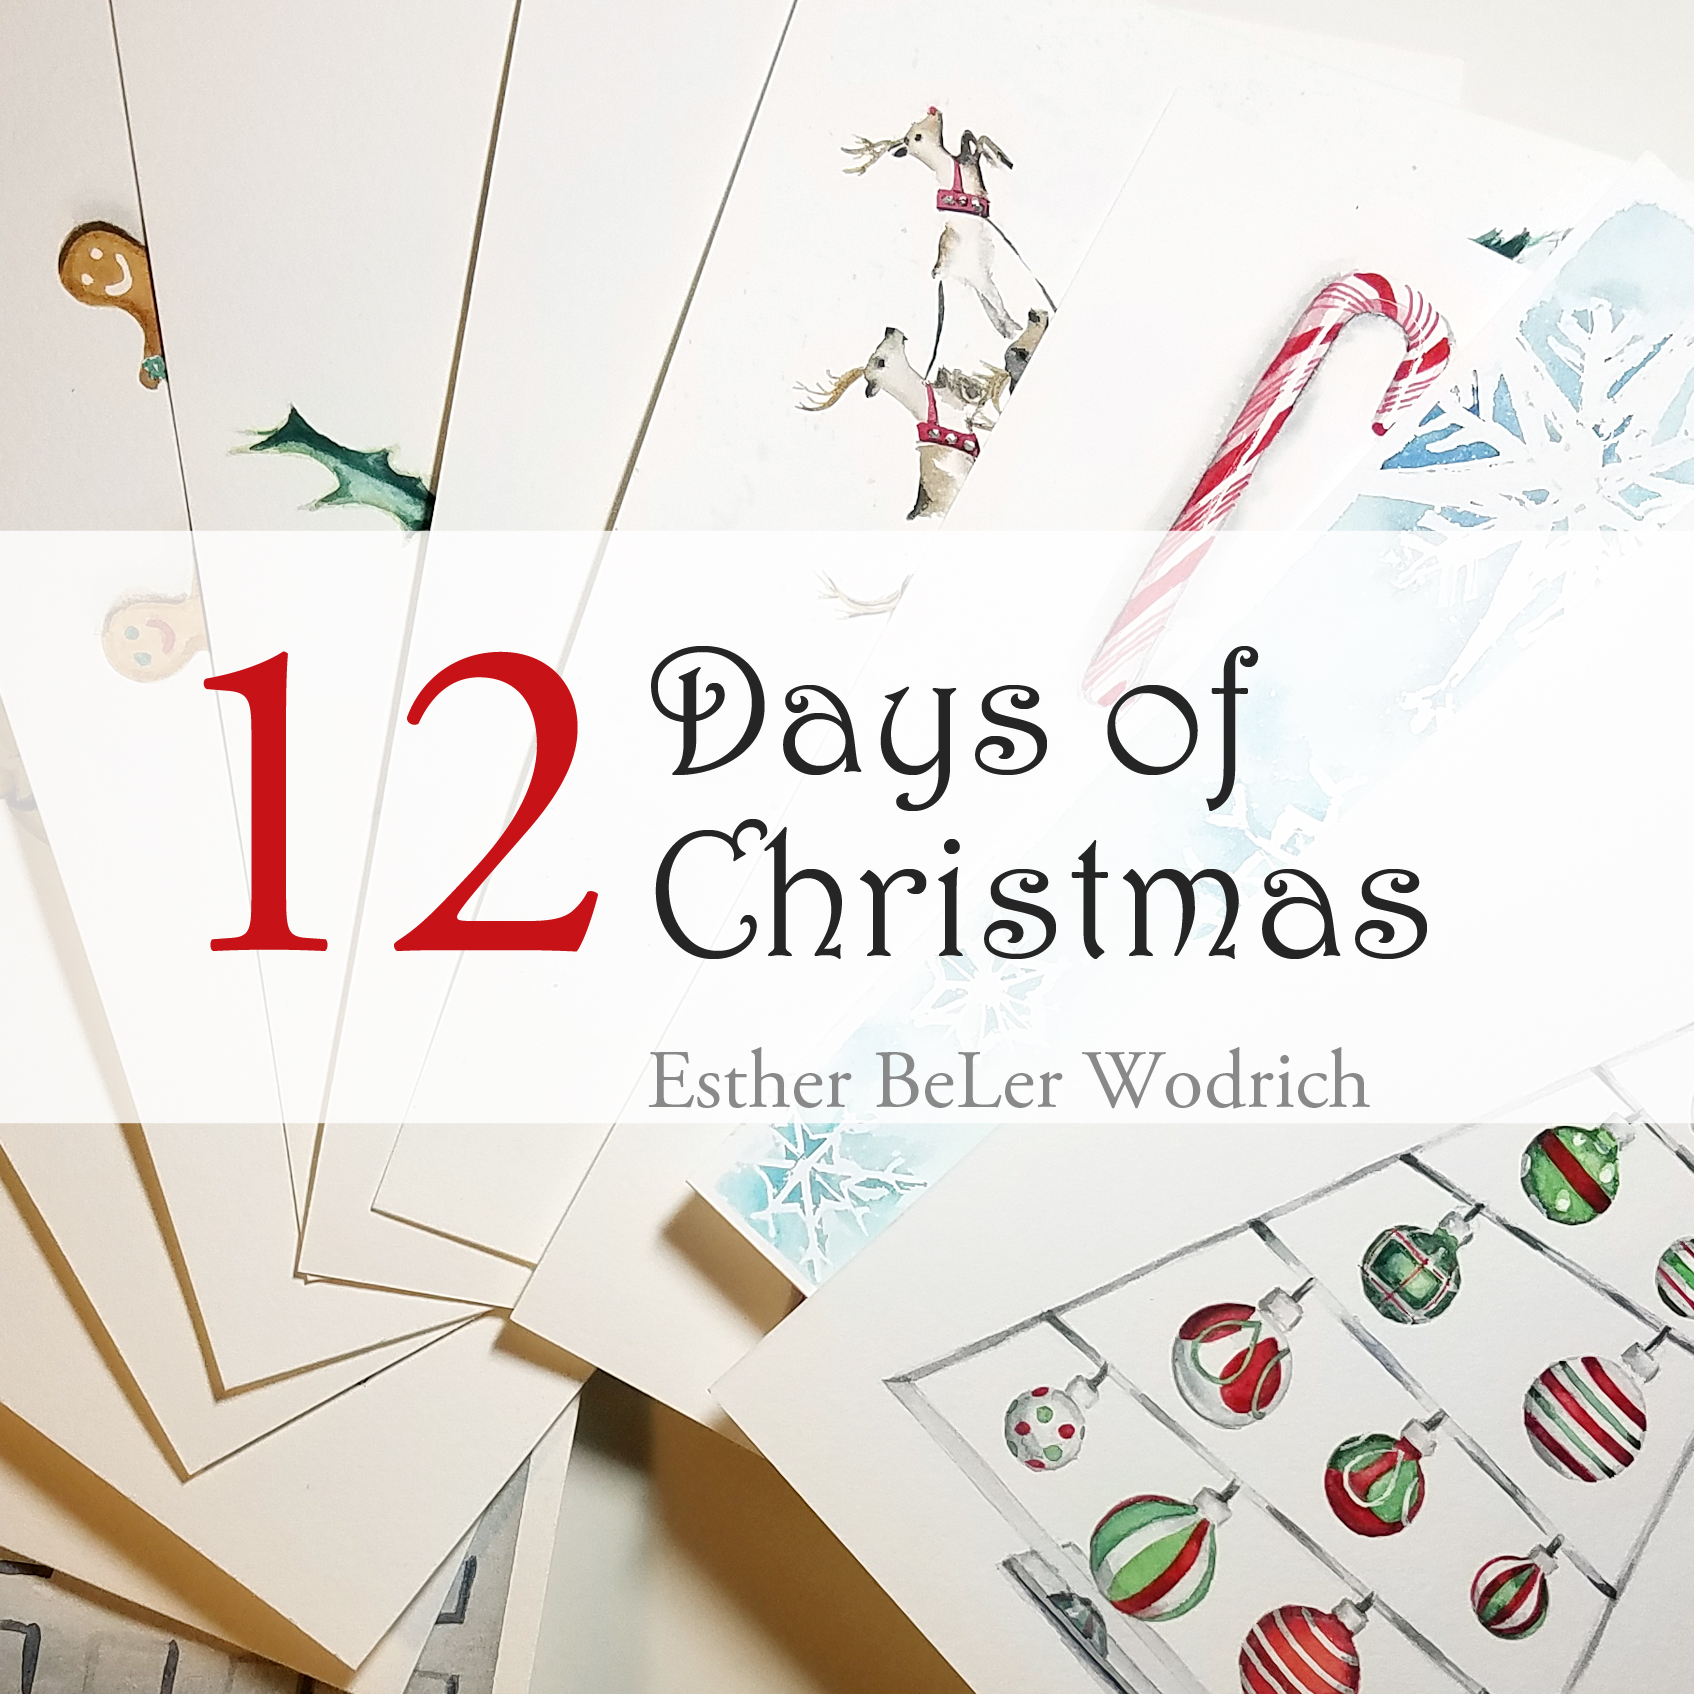 12 Days of Christmas series by artist Esther BeLer Wodrich